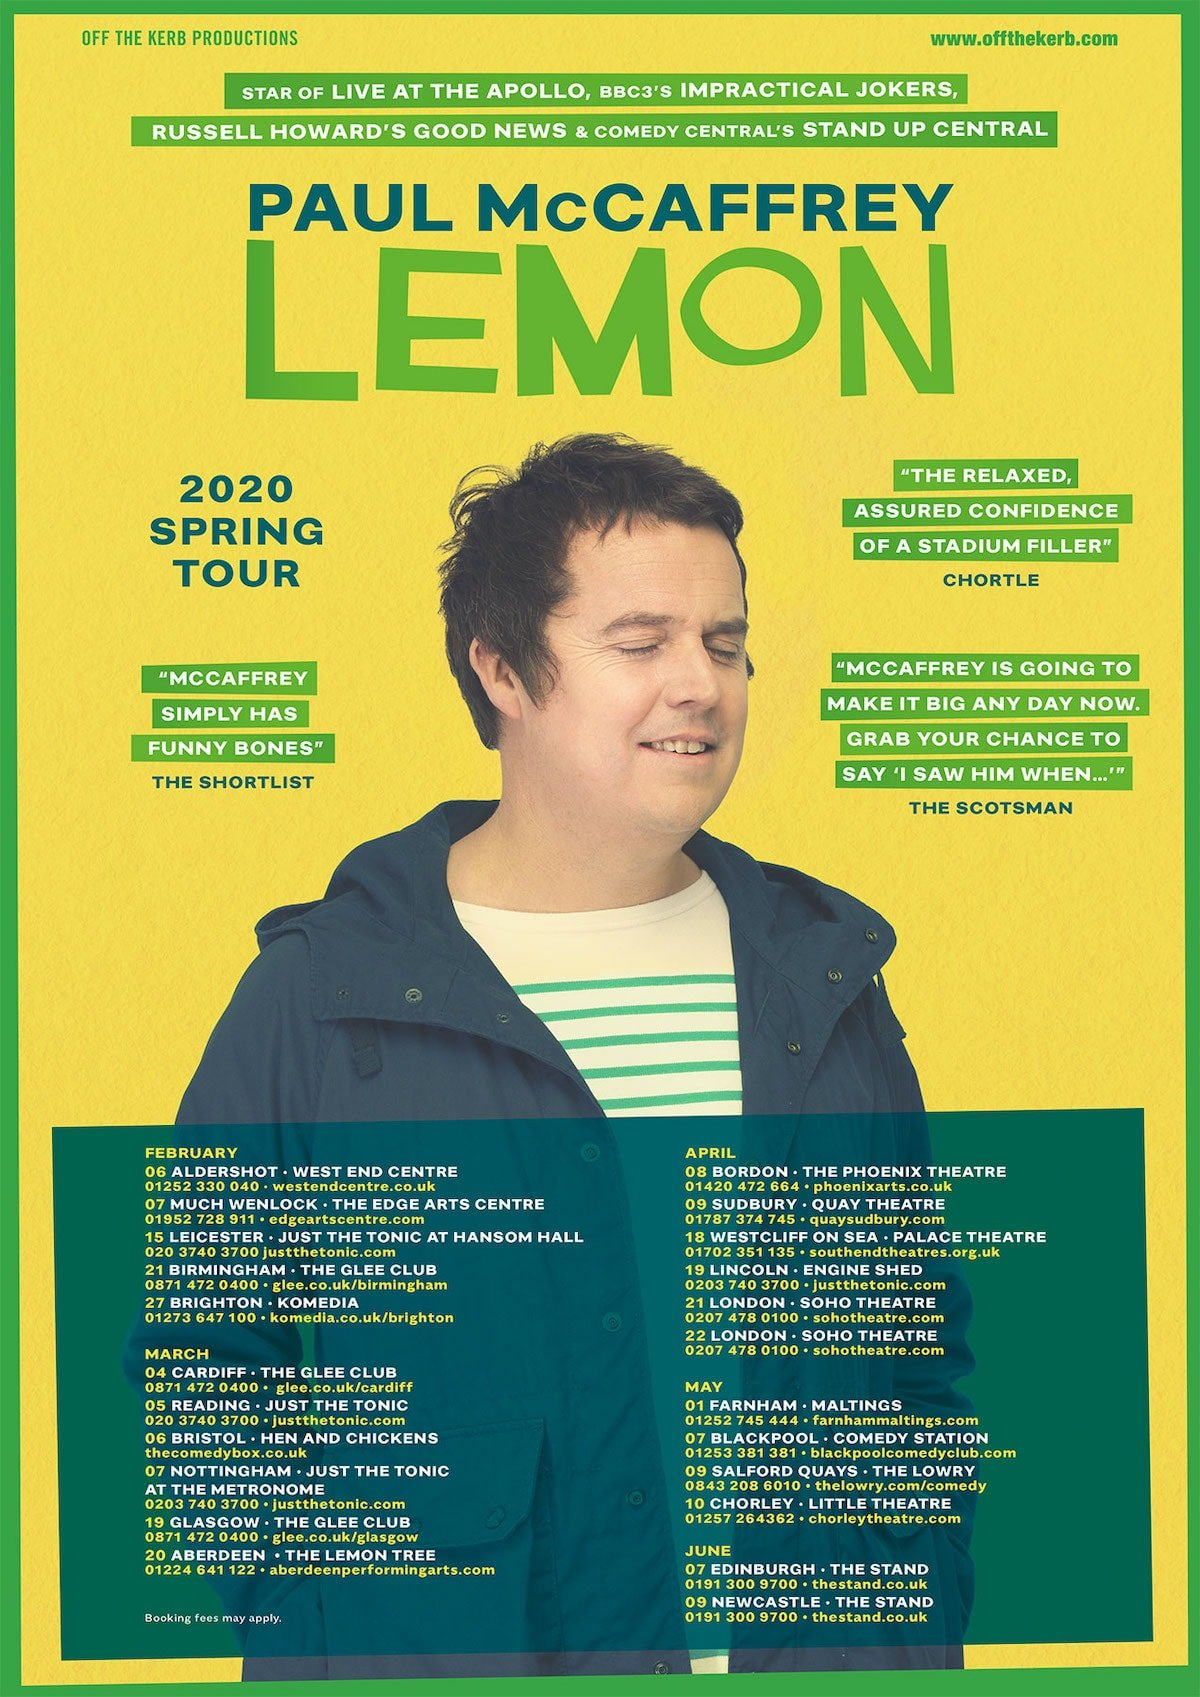 Paul McCaffrey - Lemon - 2020 tour